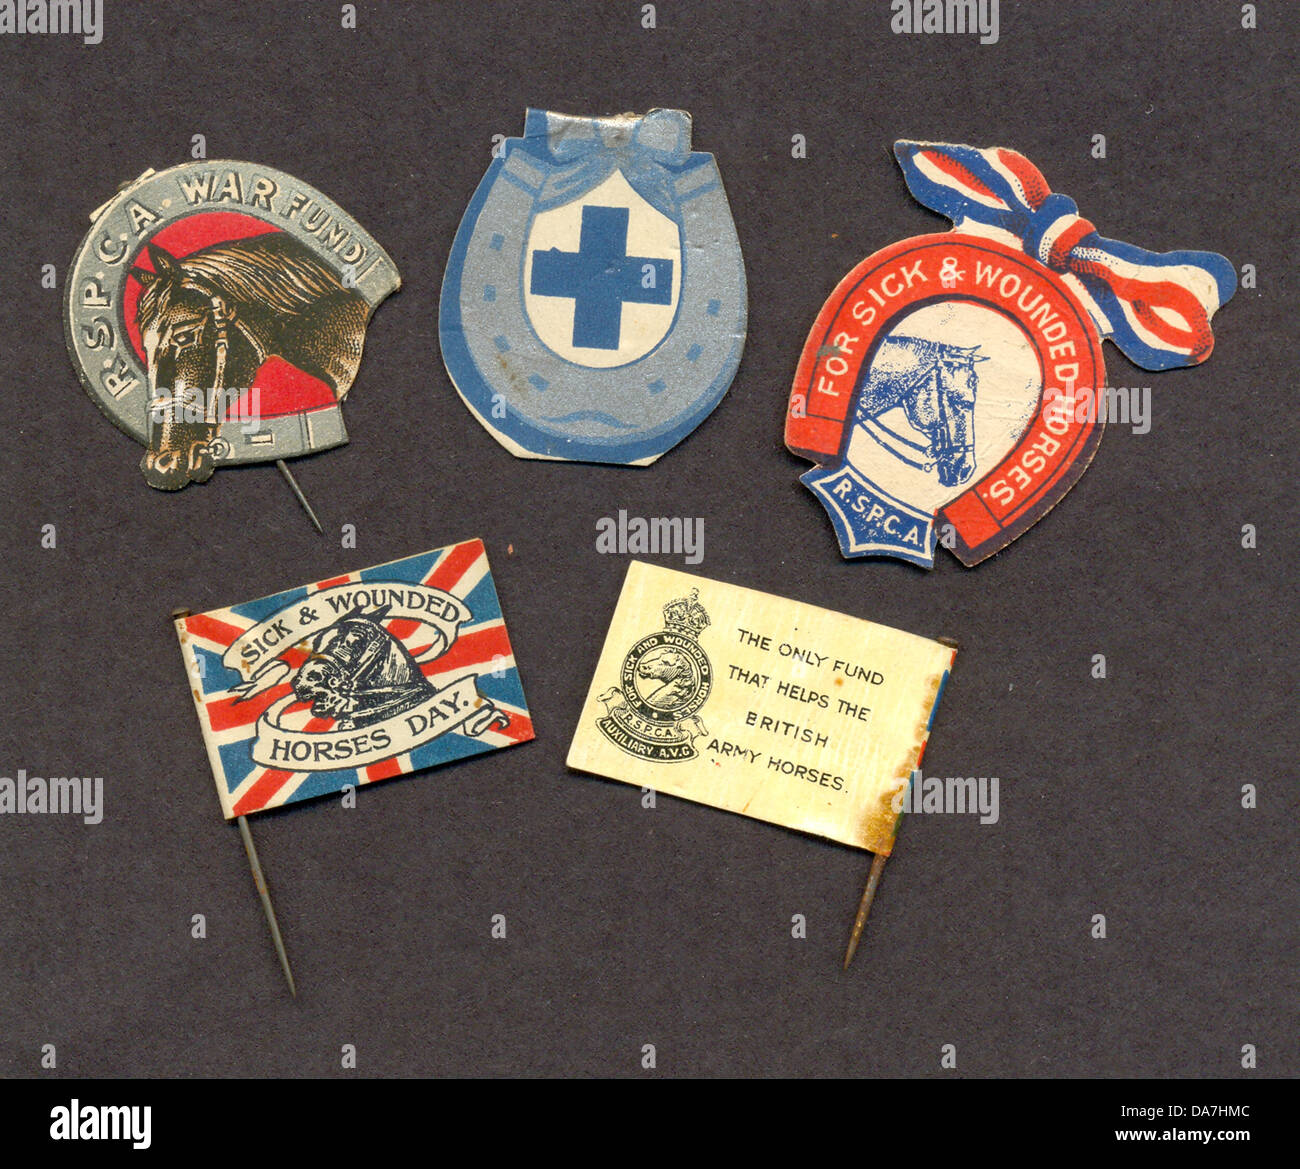 World War One charity flag day emblems for army horses - Stock Image